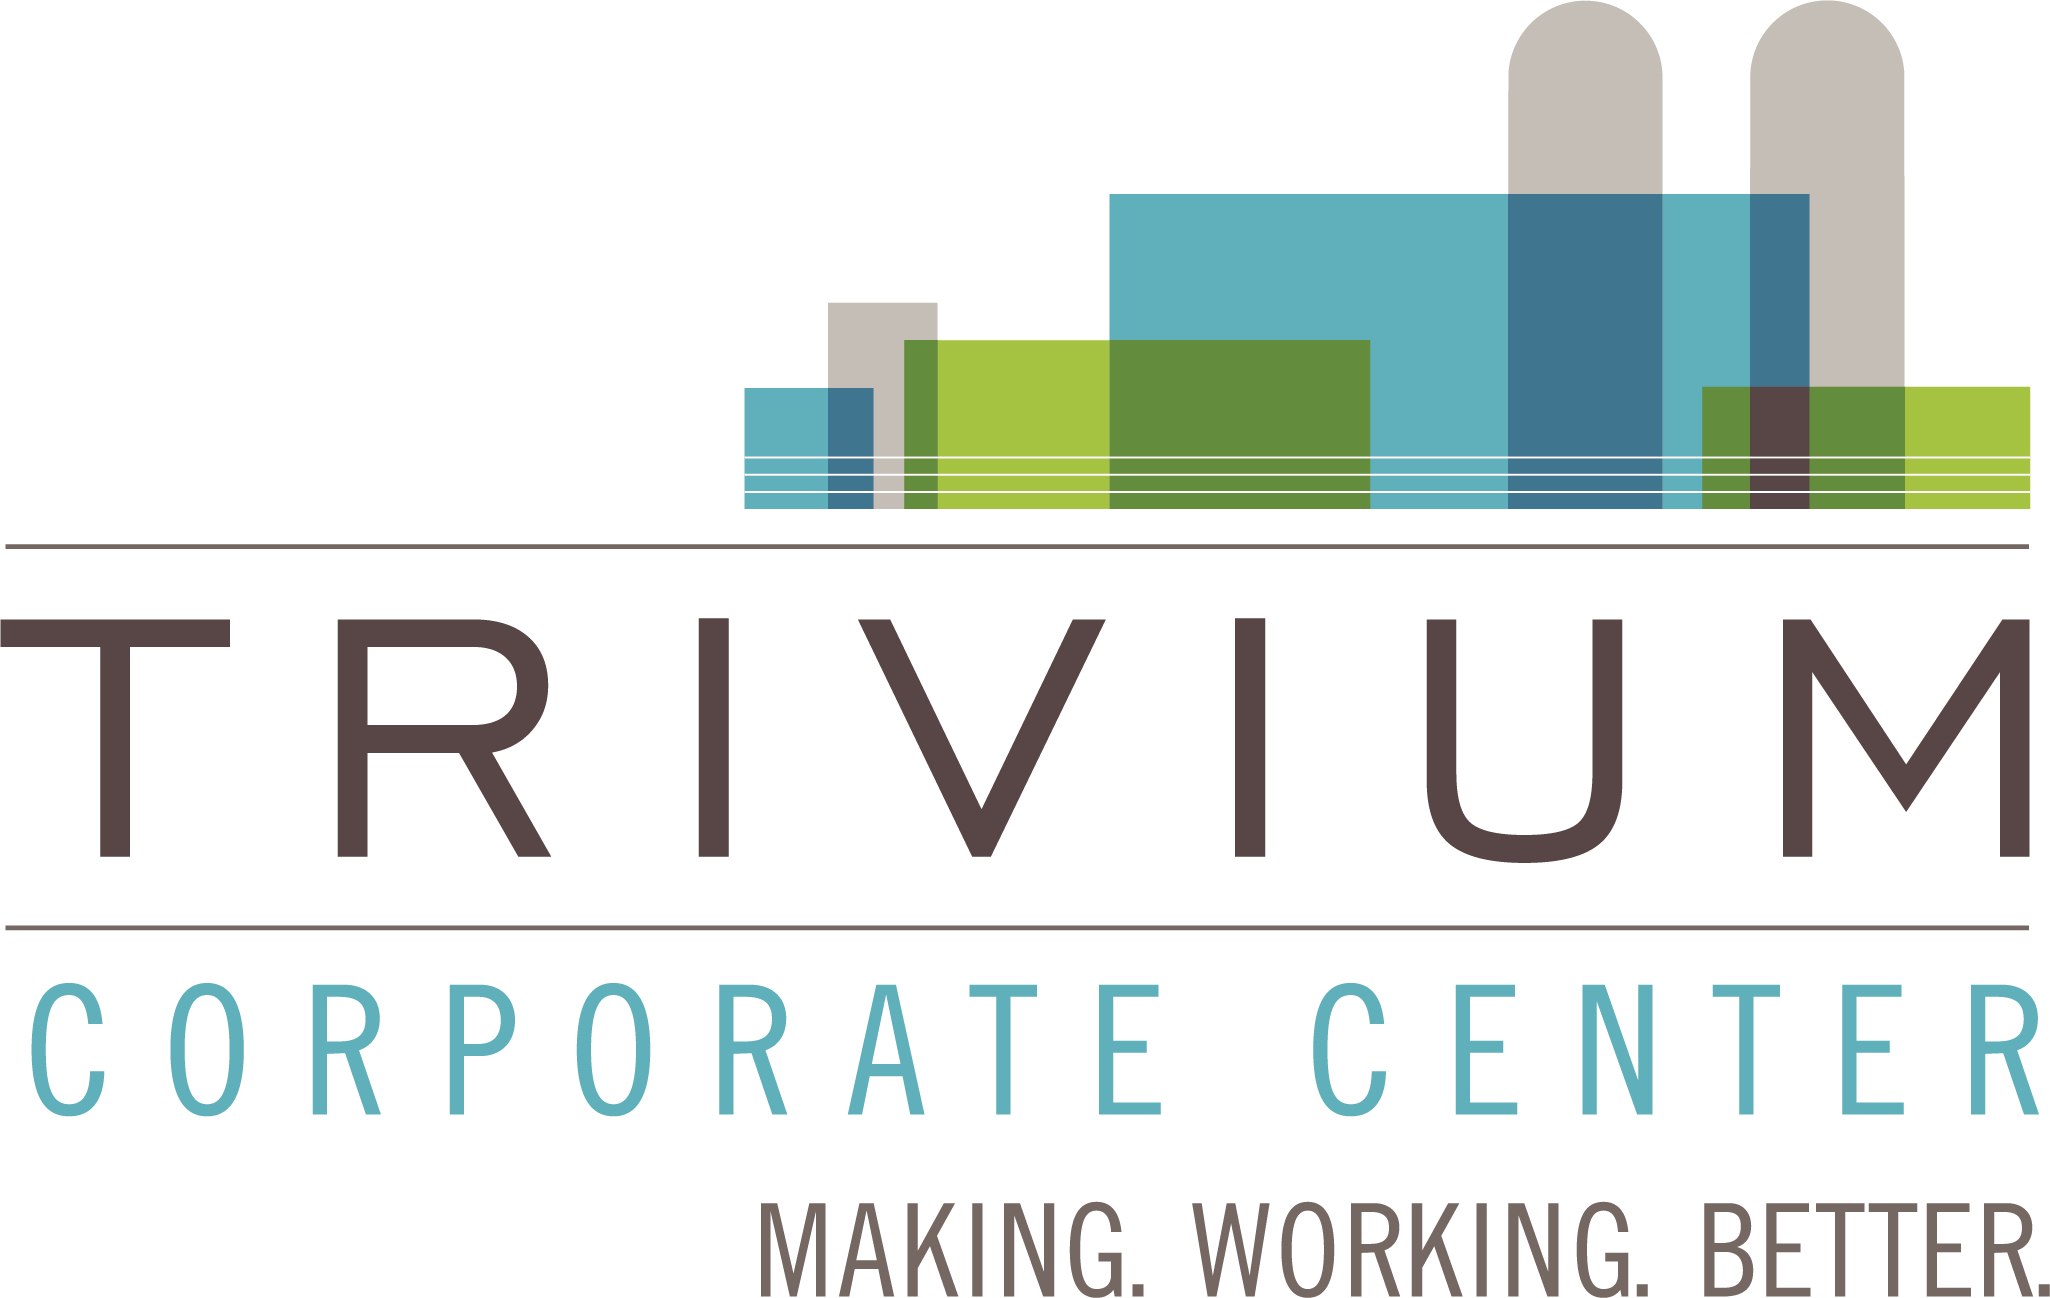 Ground Breaking Ceremony Scheduled for Trivium Corporate Center